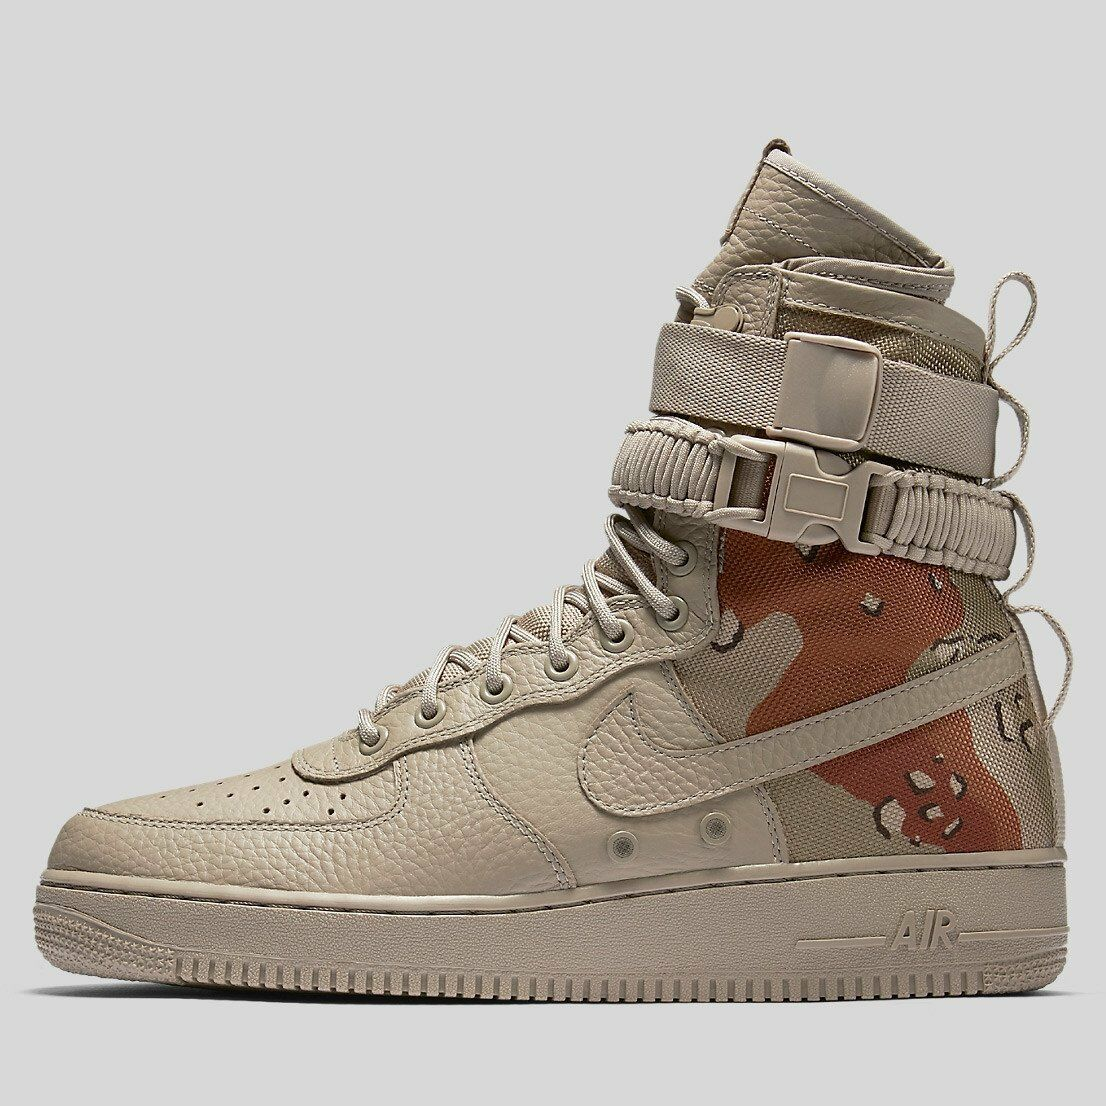 nike air force sf 1 special forces - sf force af1 wüste camo größe 13.864024-202 jordan 3ebab4